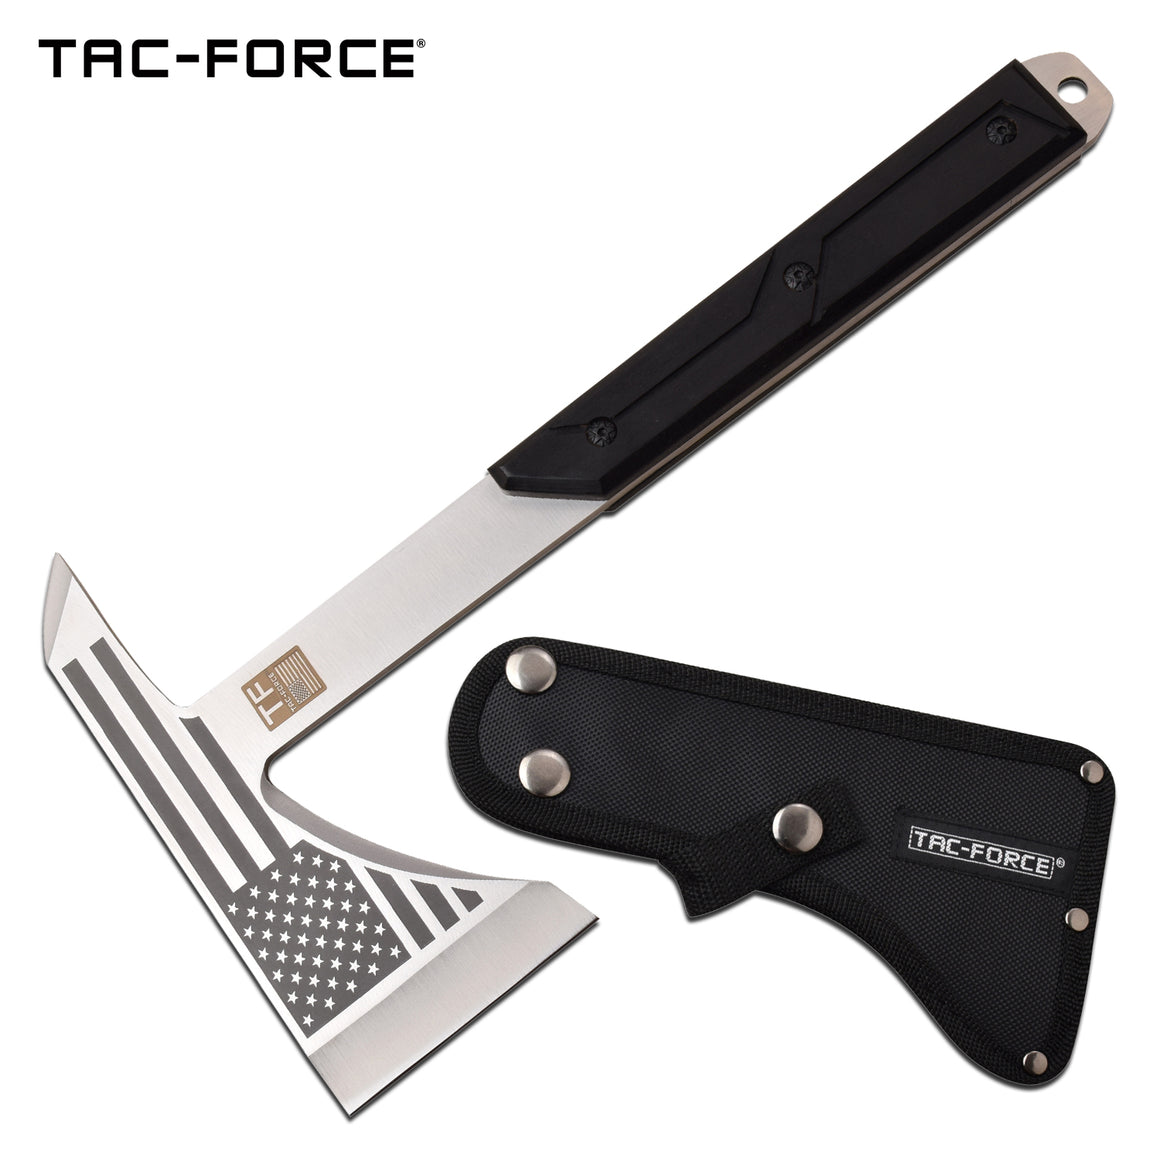 Tac-Force TF-AXE001S Axe